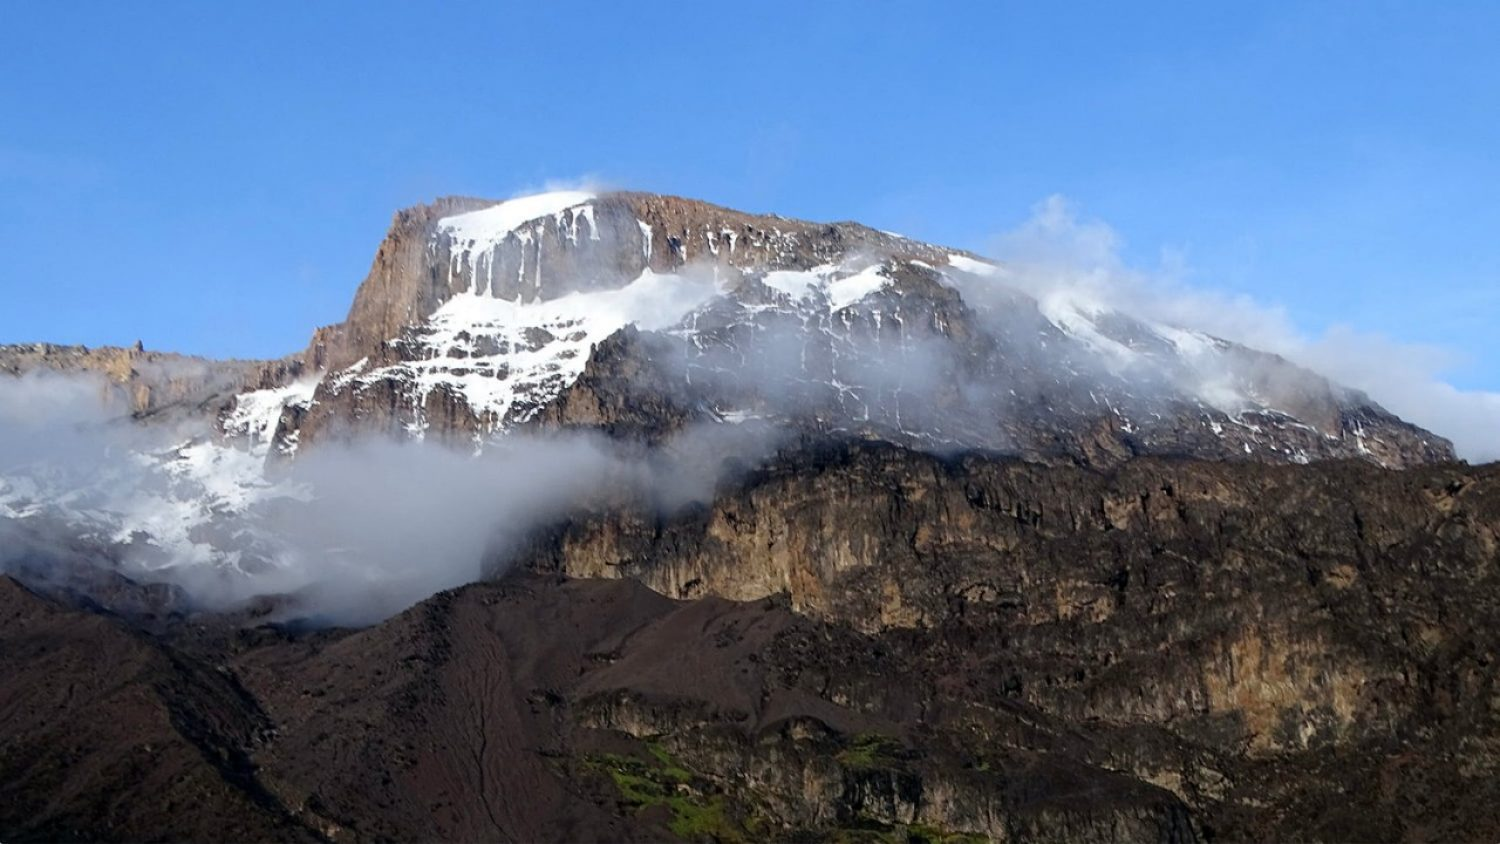 The view from Barranco Camp